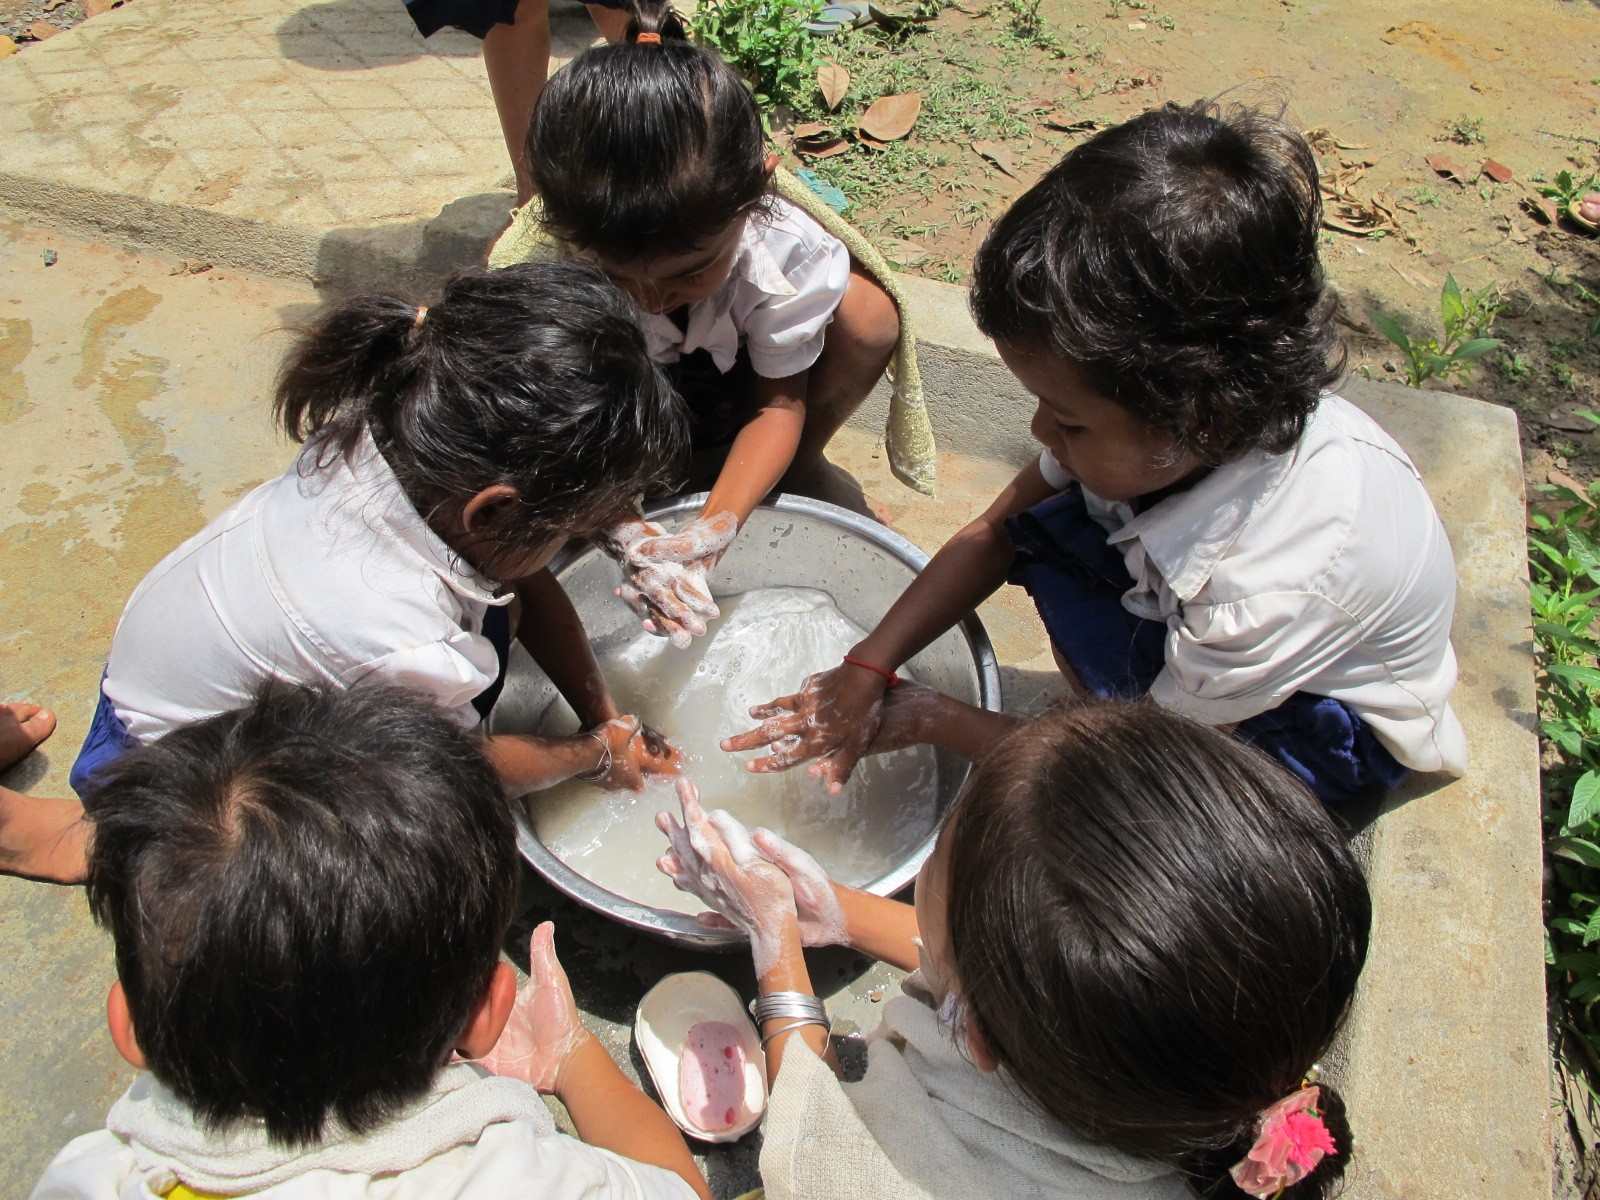 Children in Cambodia wash their hands